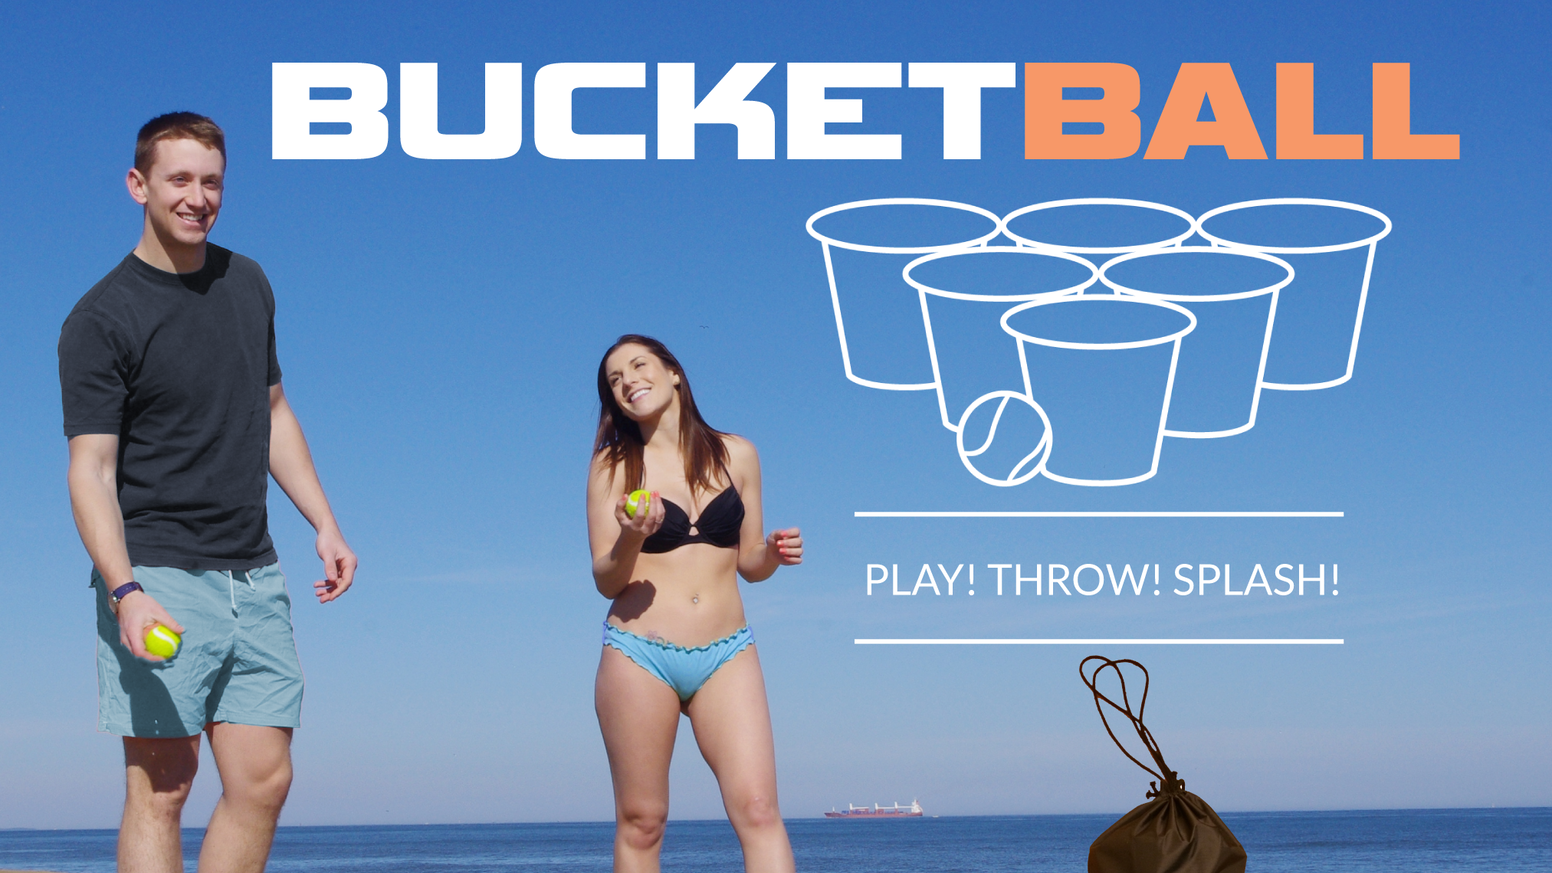 BucketBall is a new beach, poolside and backyard game that is played like beer pong but on a larger scale with buckets & game balls.